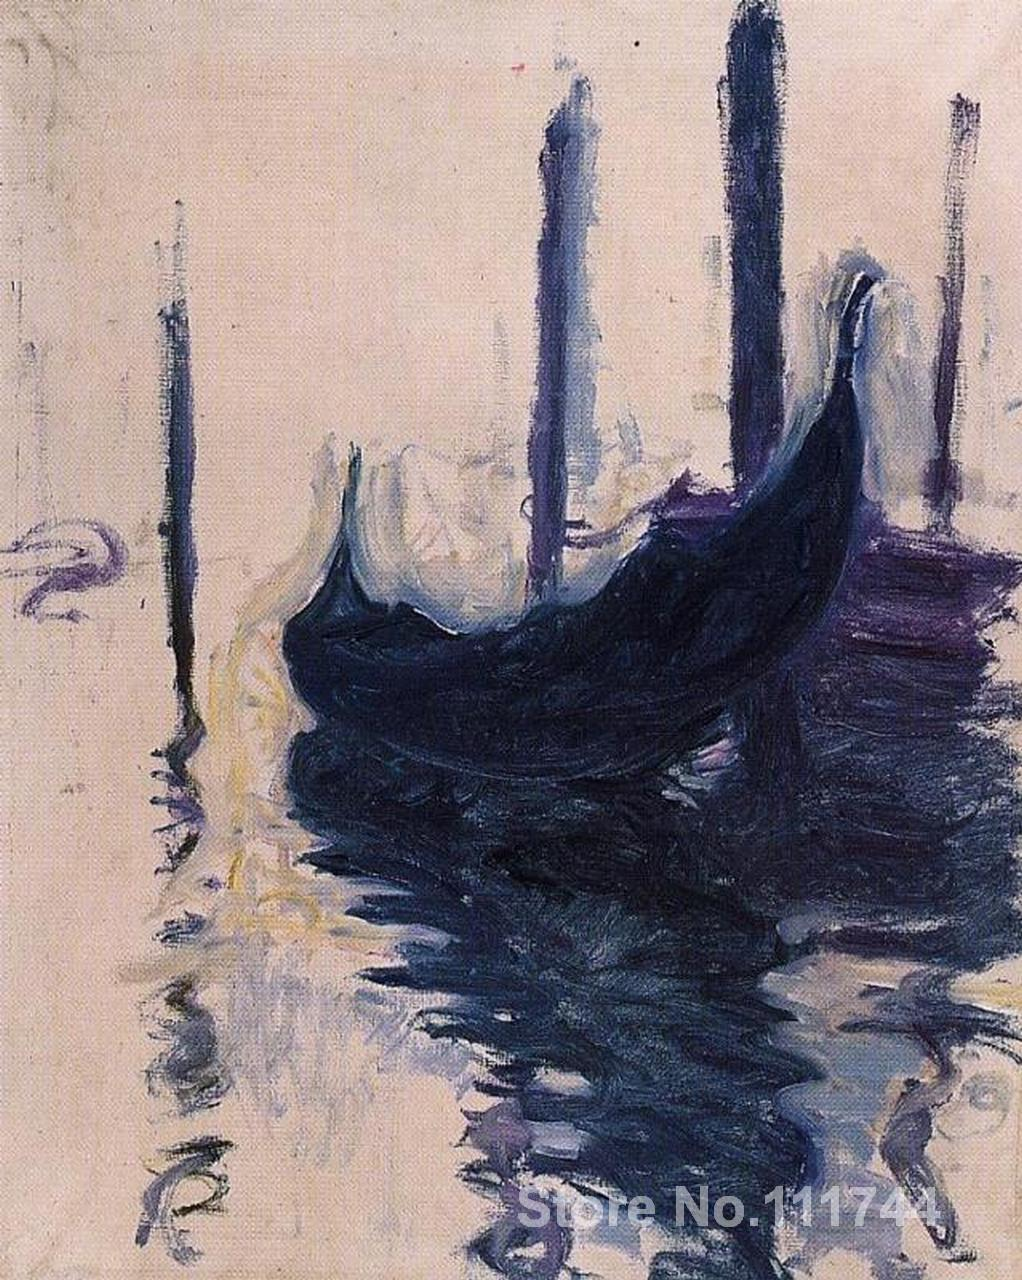 Modern art scenery gondola in venice claude monet paintings hand painted high quality